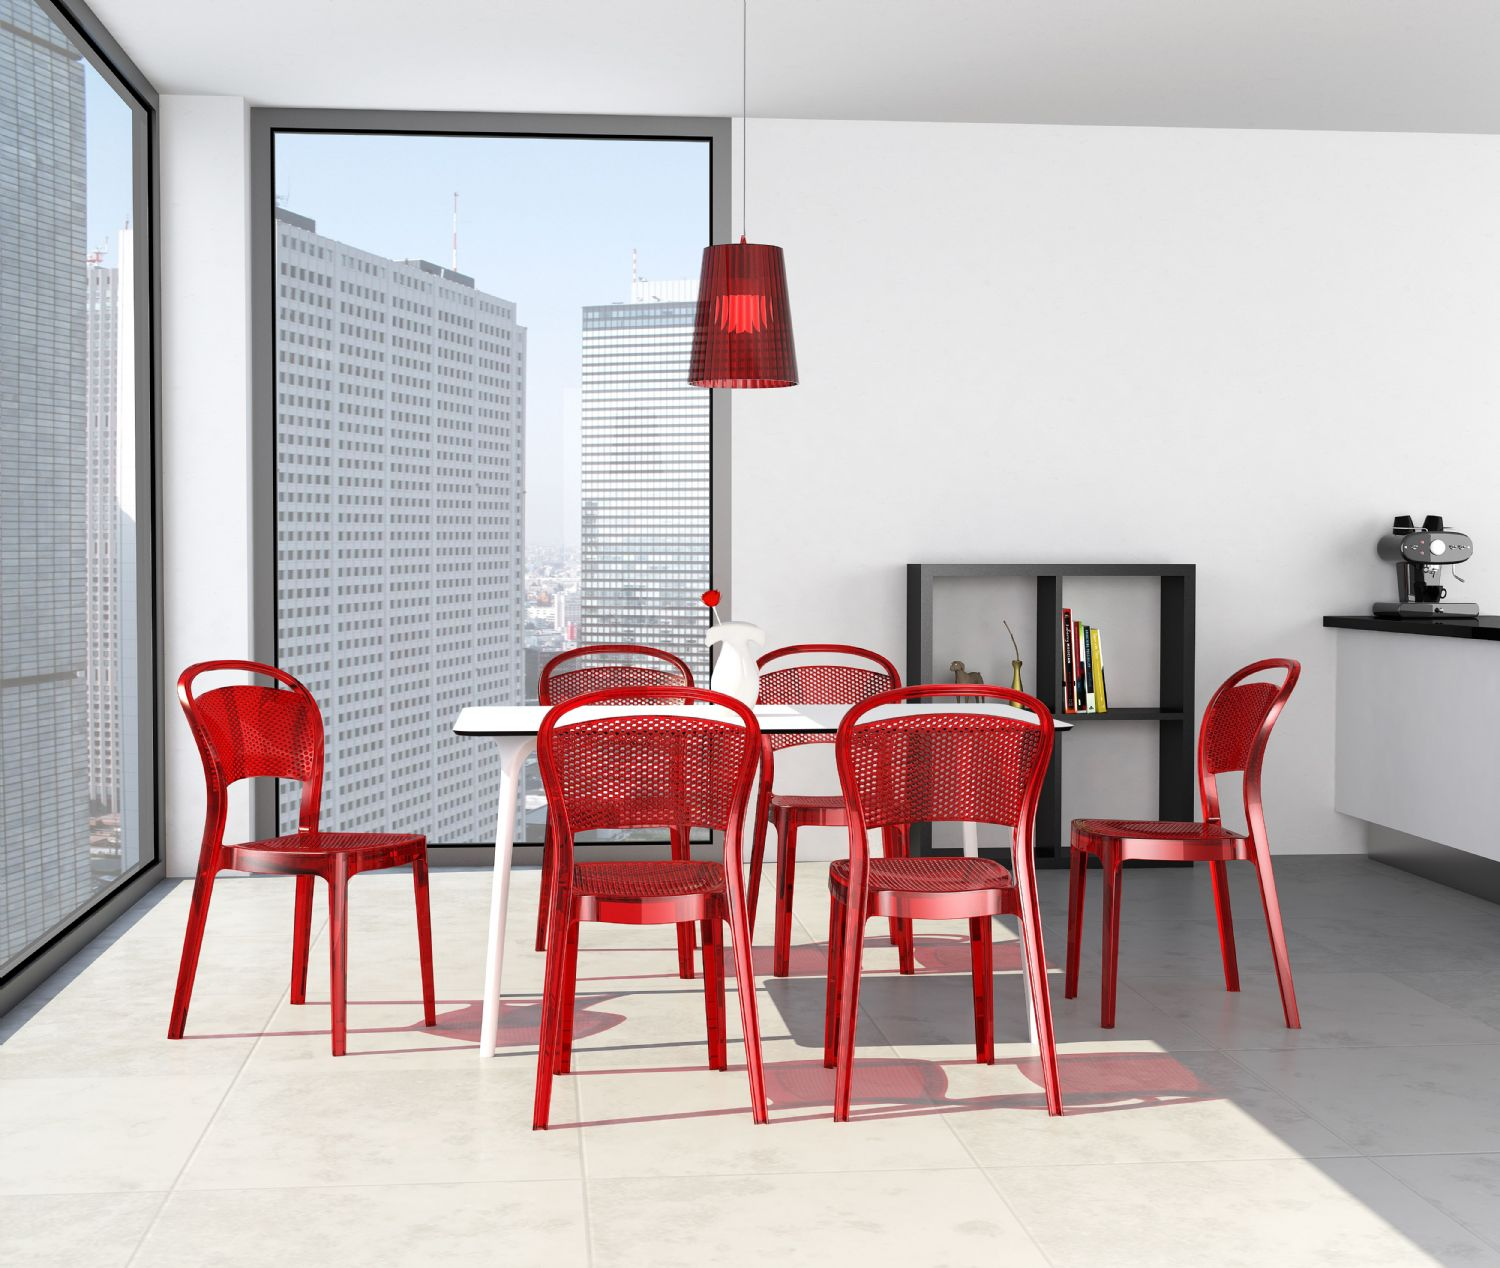 Bee Polycarbonate Dining Chair Transparent Clear ISP021-TCL - 2